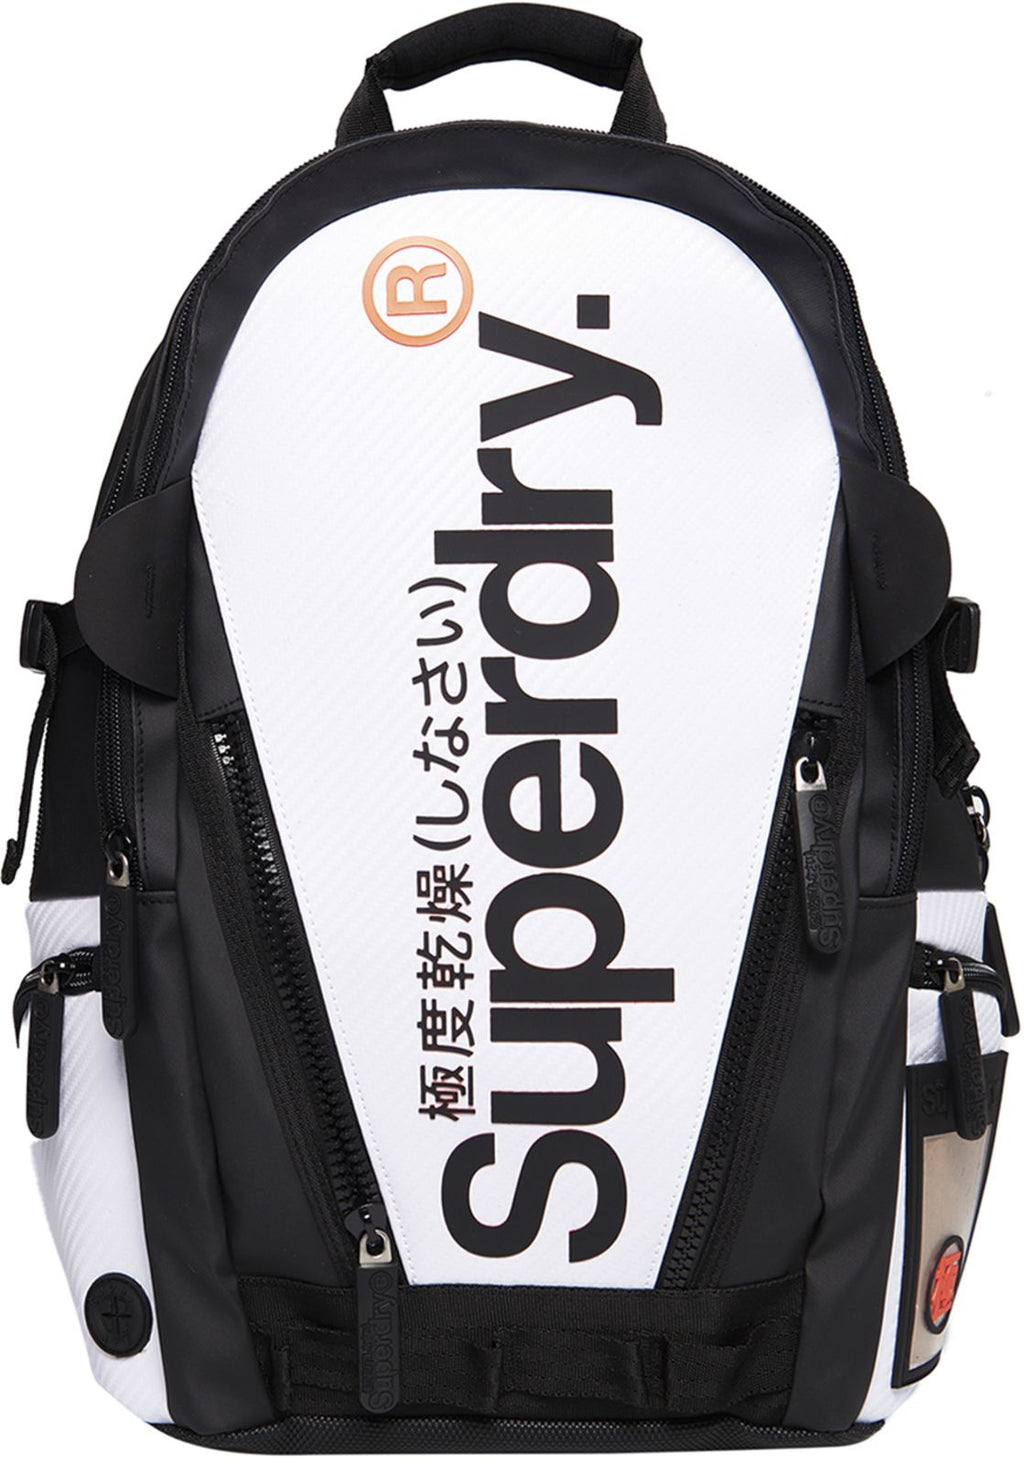 Superdry White Tarp Backpack Bag White